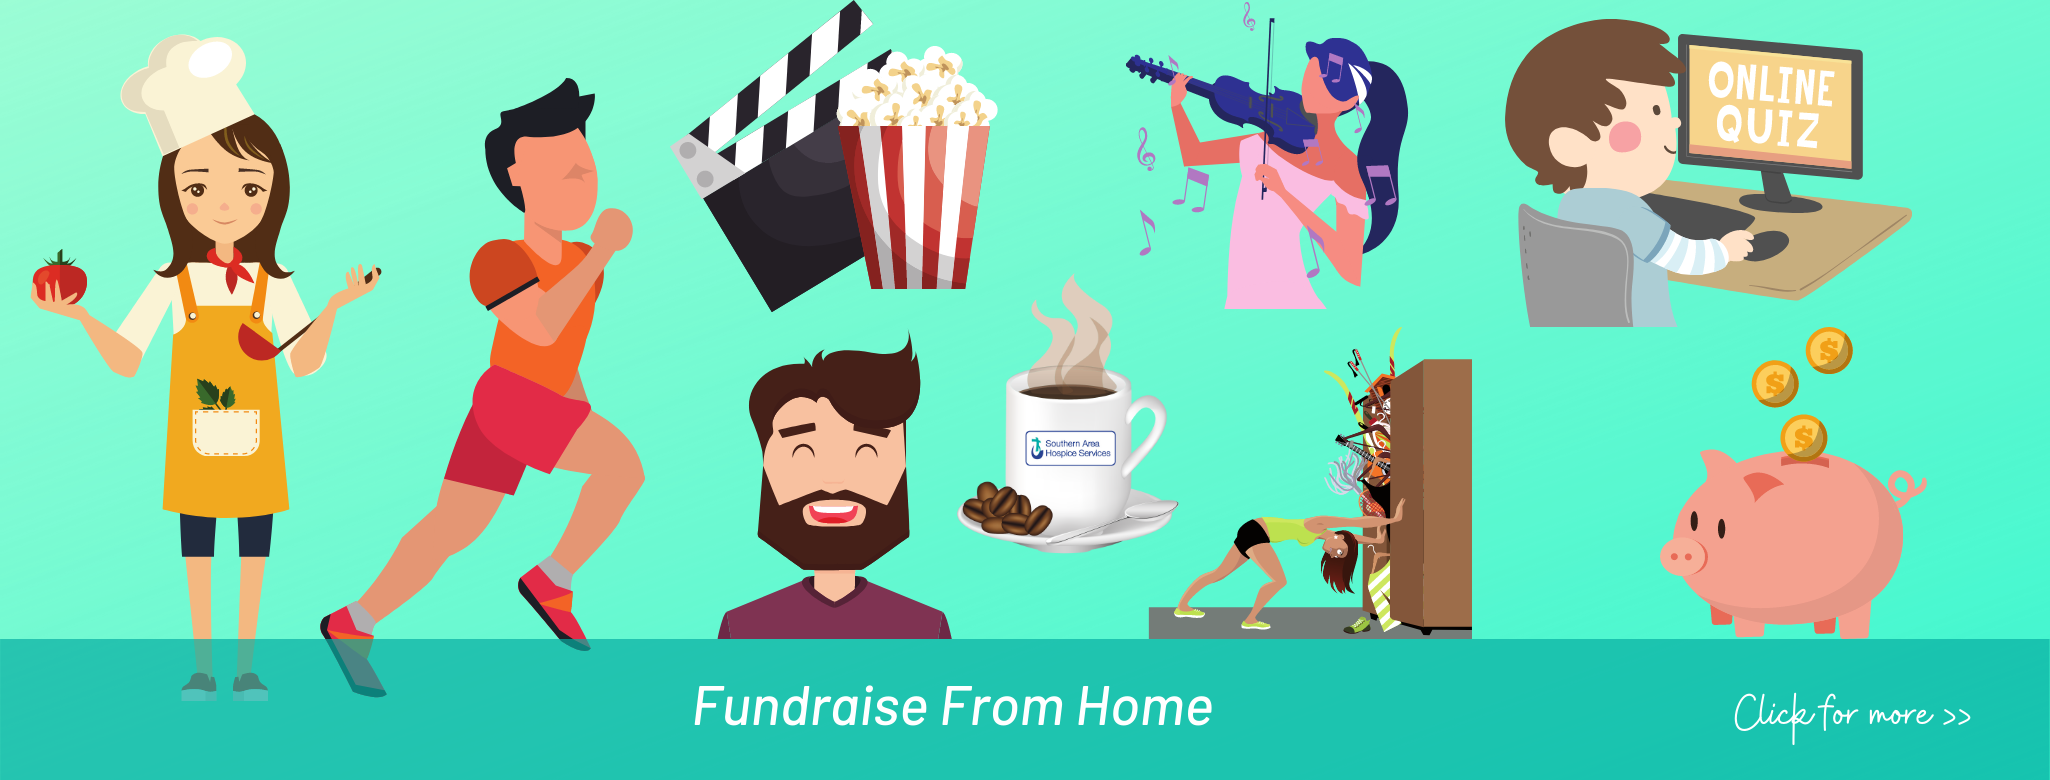 Fundraise From Home